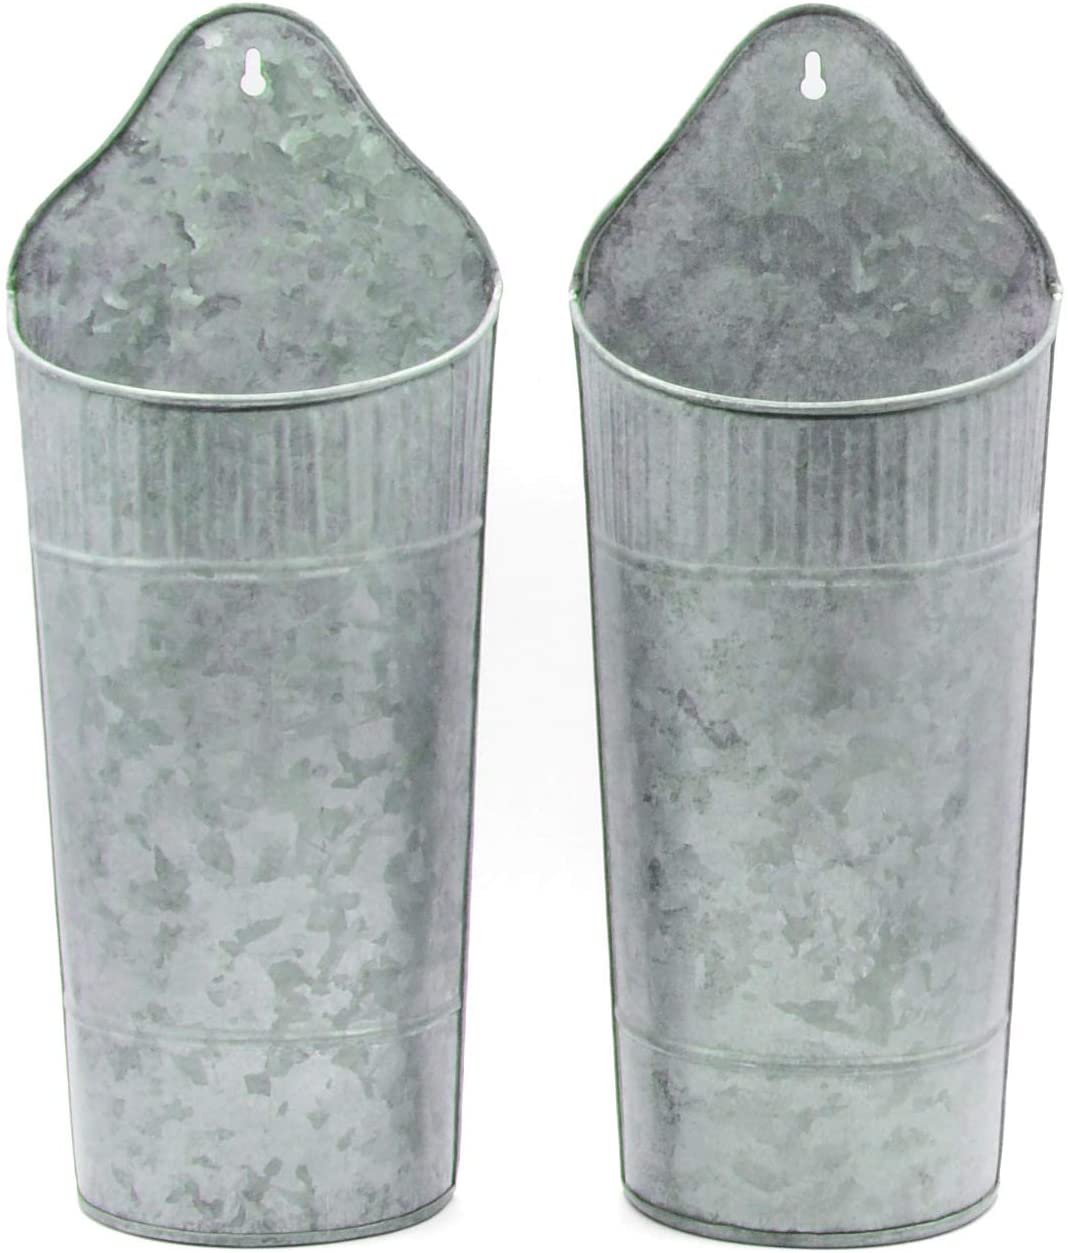 Craftsman Road Rustic Galvanized Wall Planter (Large 15 in, Set of 2) - Metal Wall Vase, Wall Pocket, Farmhouse Wall Decor